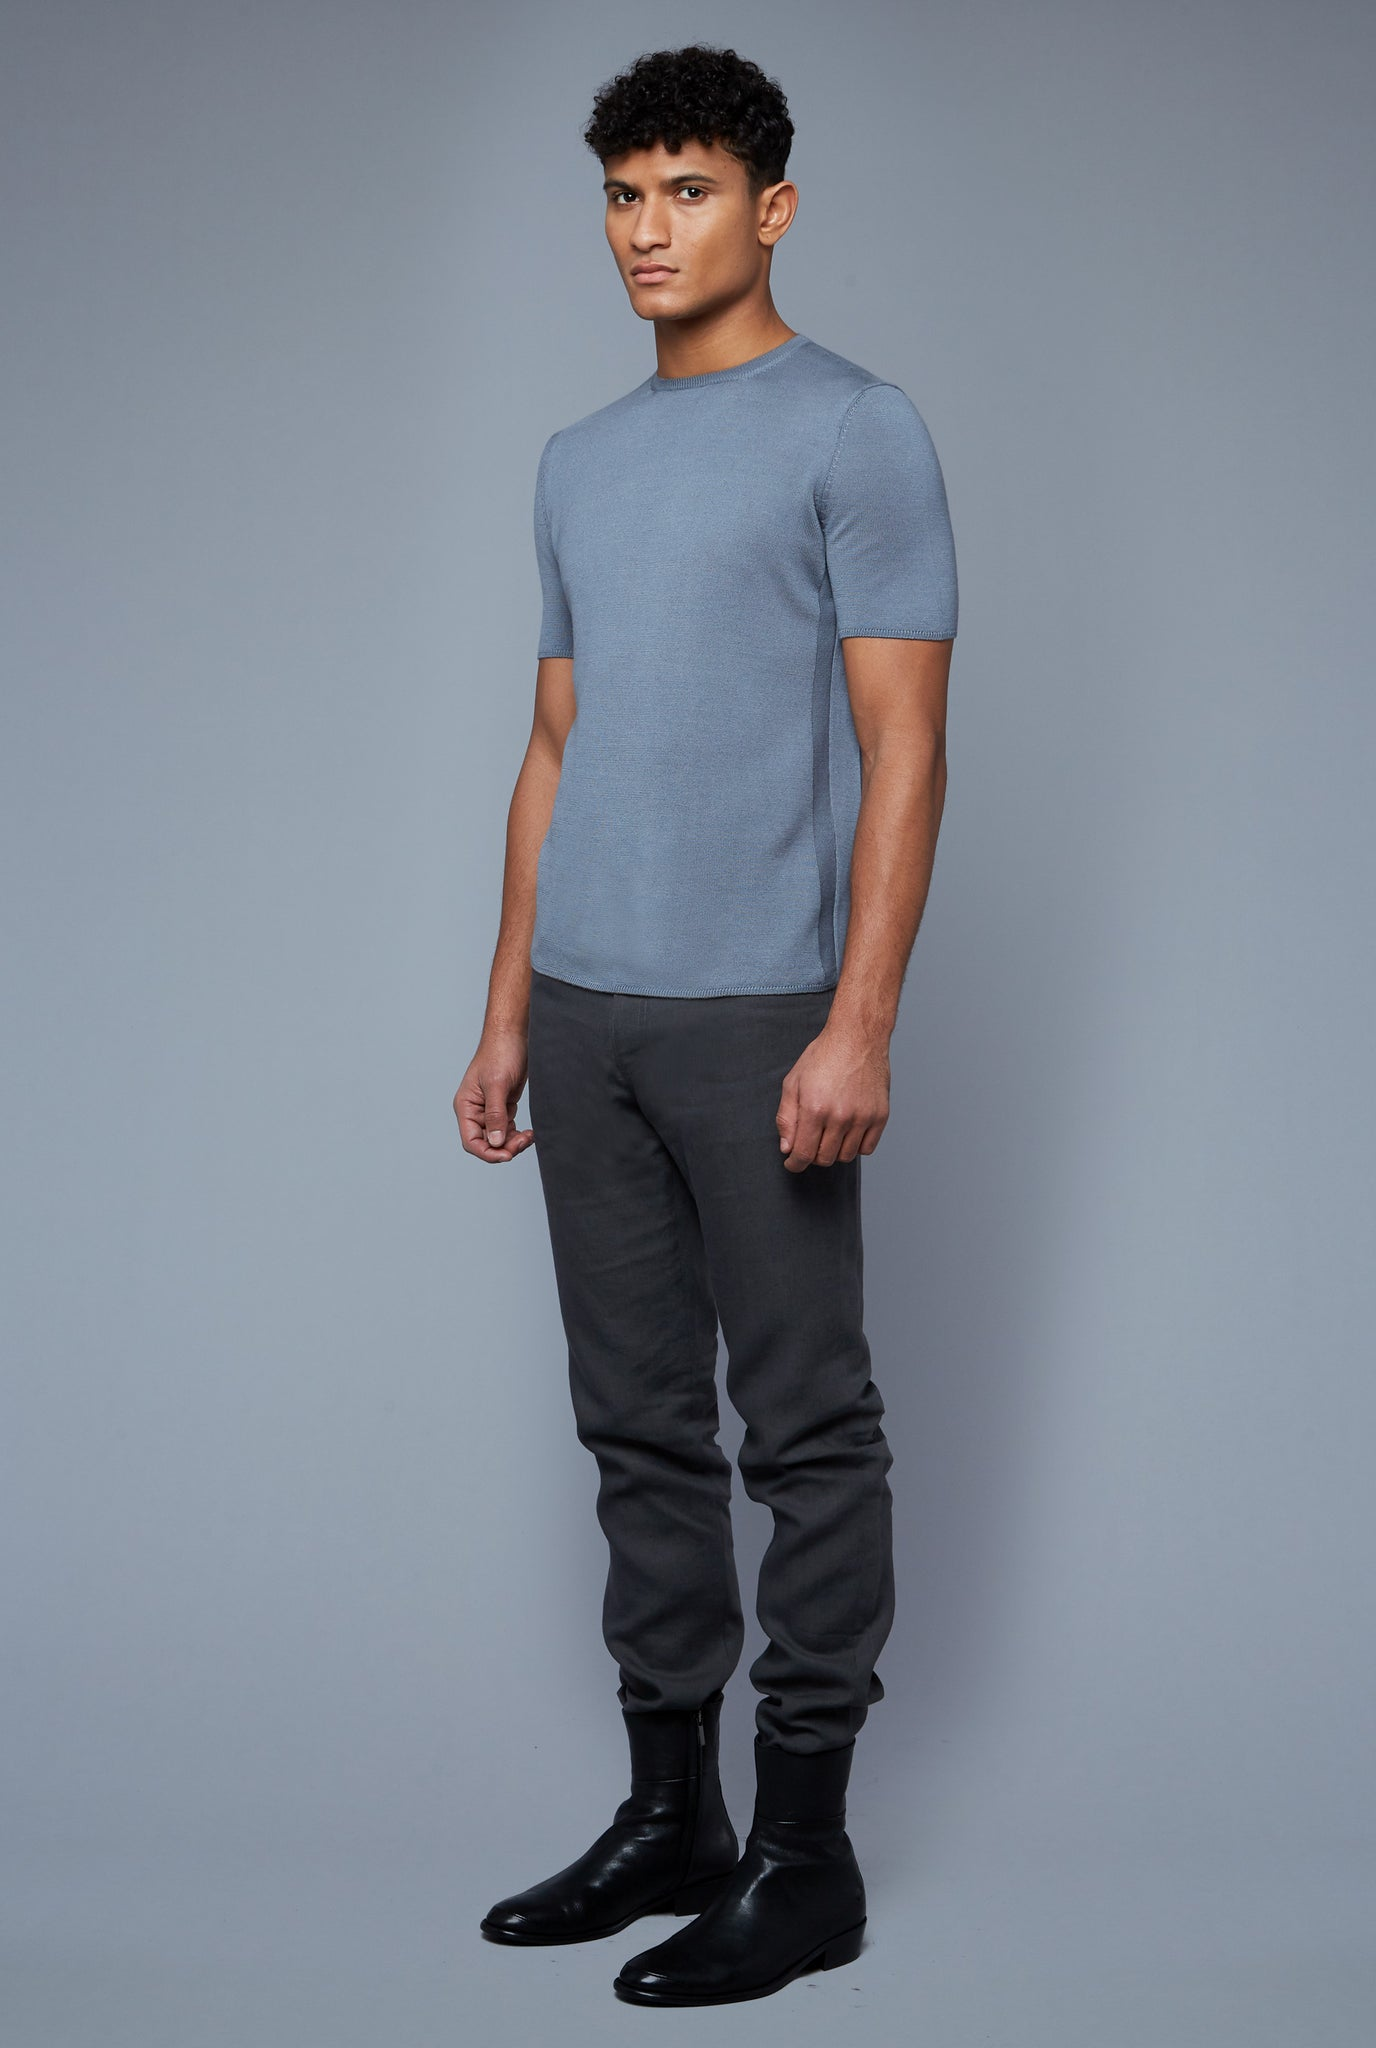 Three Quarter View: Model Tre Boutilier wearing Short Sleeve Sweater Tee